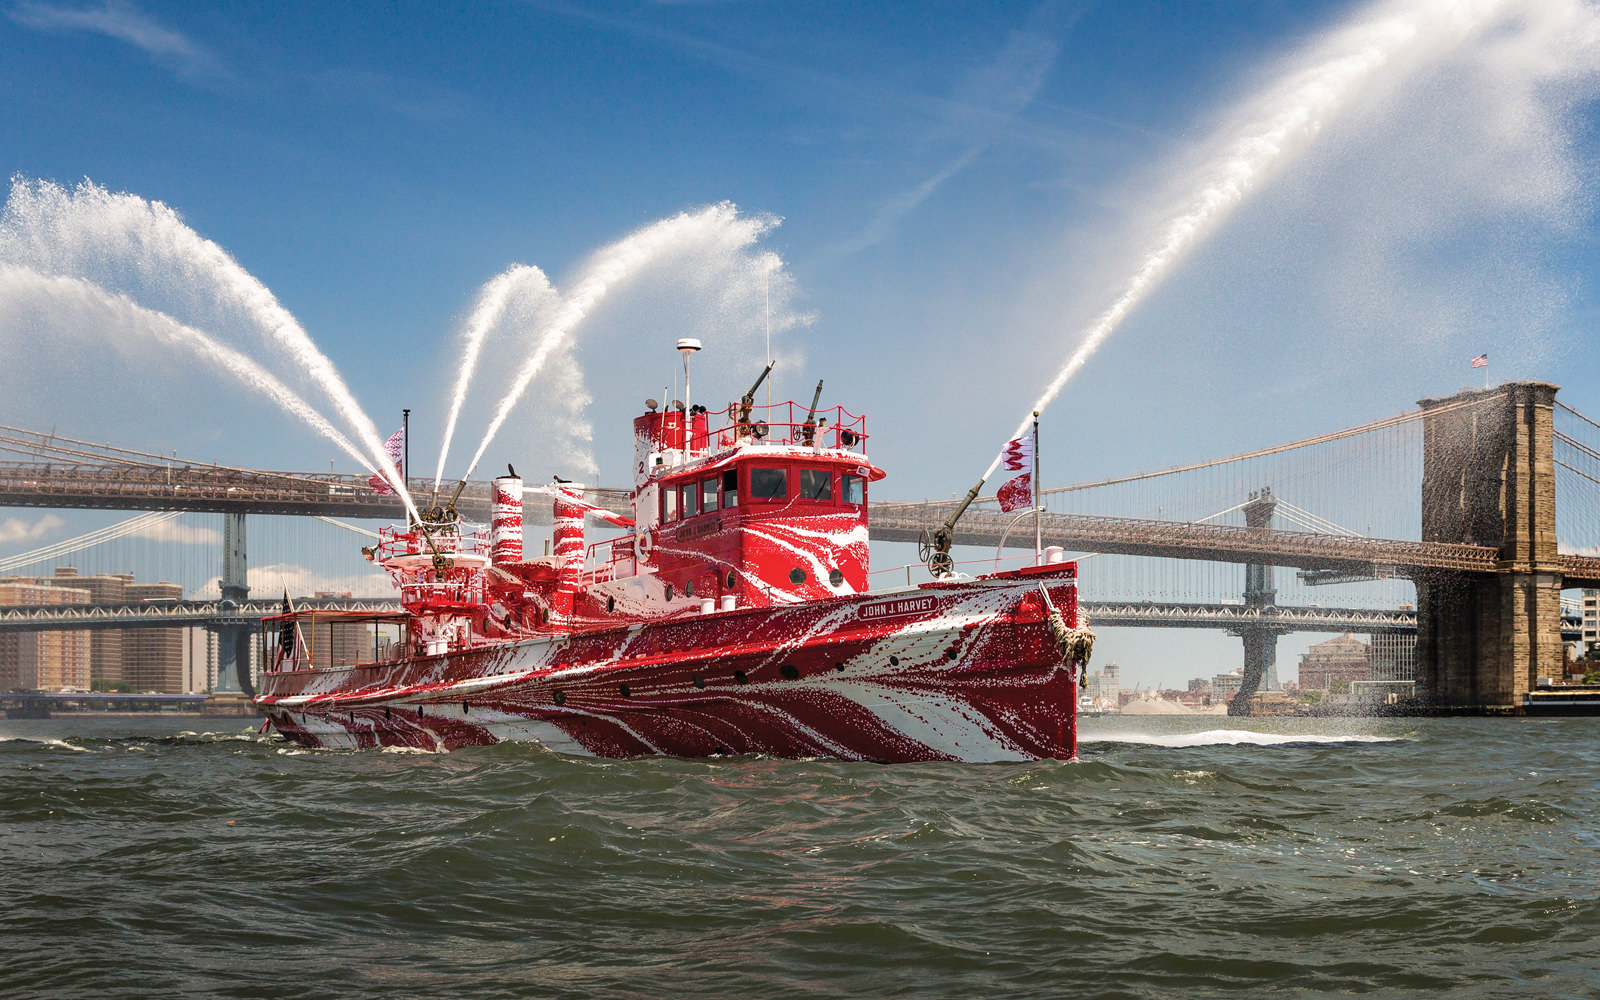 A historic fireboat is transformed into a Bloomberg Philanthropies-supported work of art inspired by the vibrant camouflage patterns painted on ships crossing the Atlantic during World War I